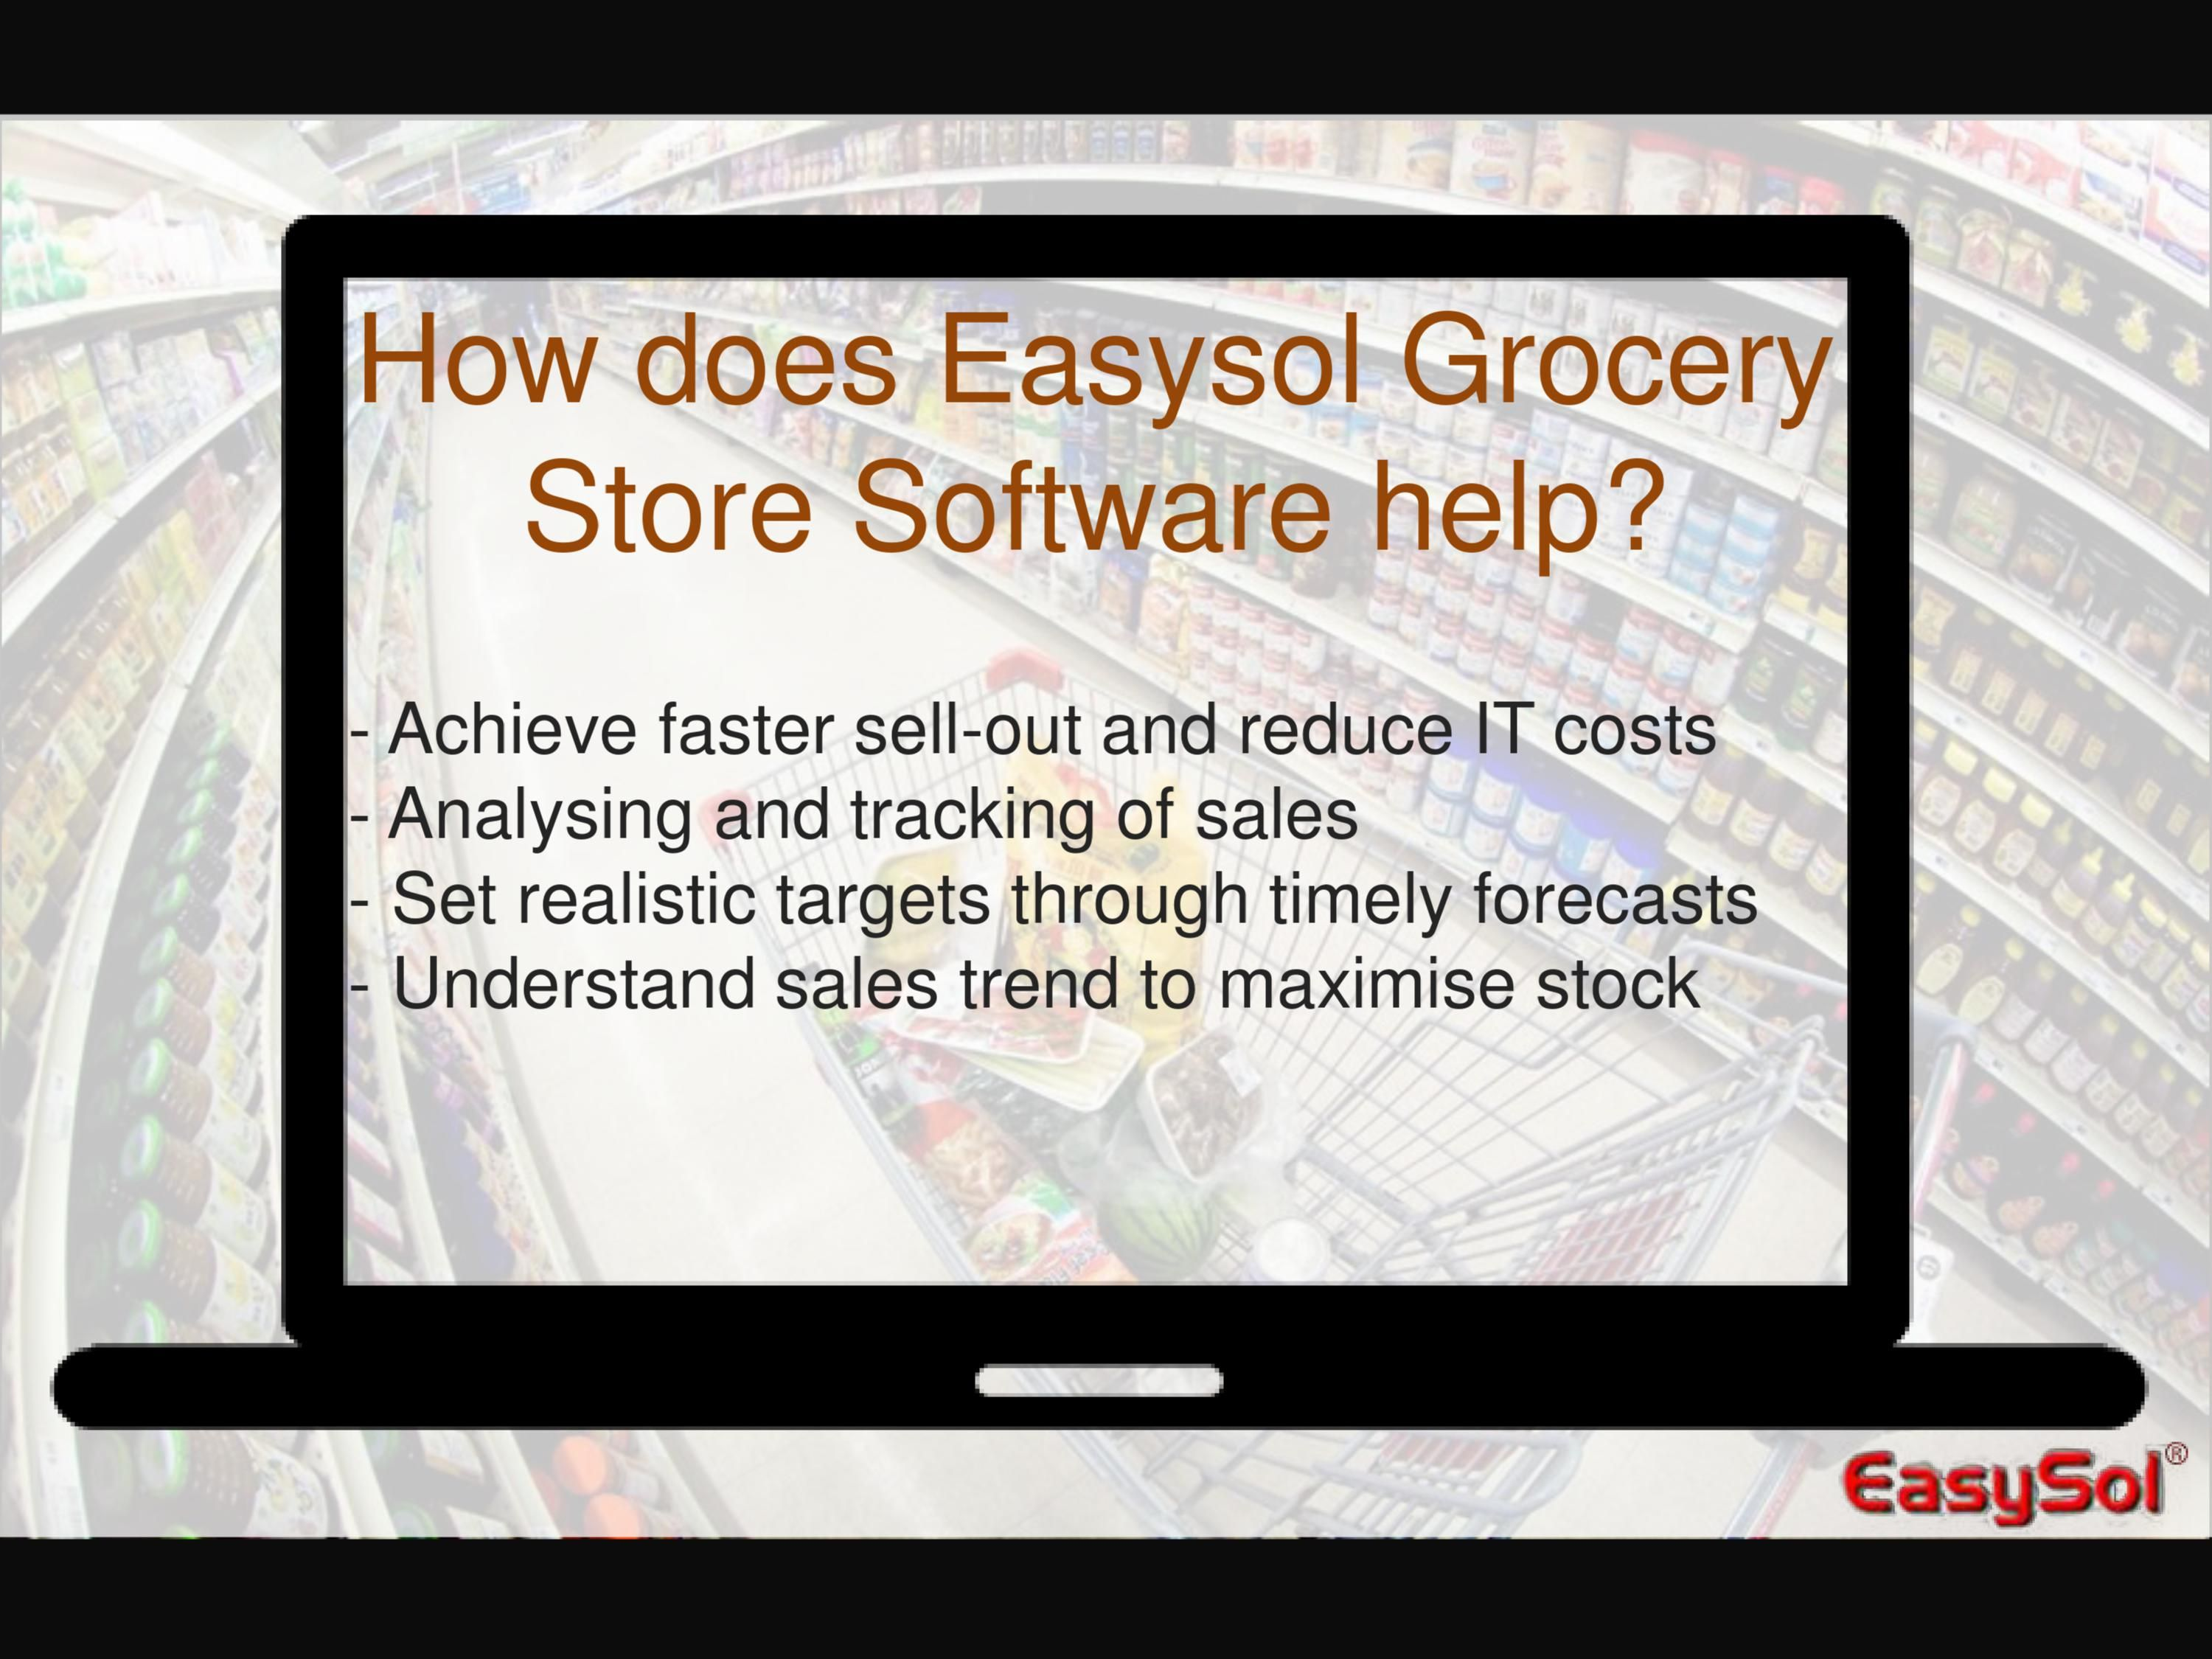 The Easysol Grocery Store Software helps to achieve faster sell-out and reduce IT costs. It helps to analyse and track sales. It sets realistic targets through timely forecasts and understand sales trend to maximise stock.